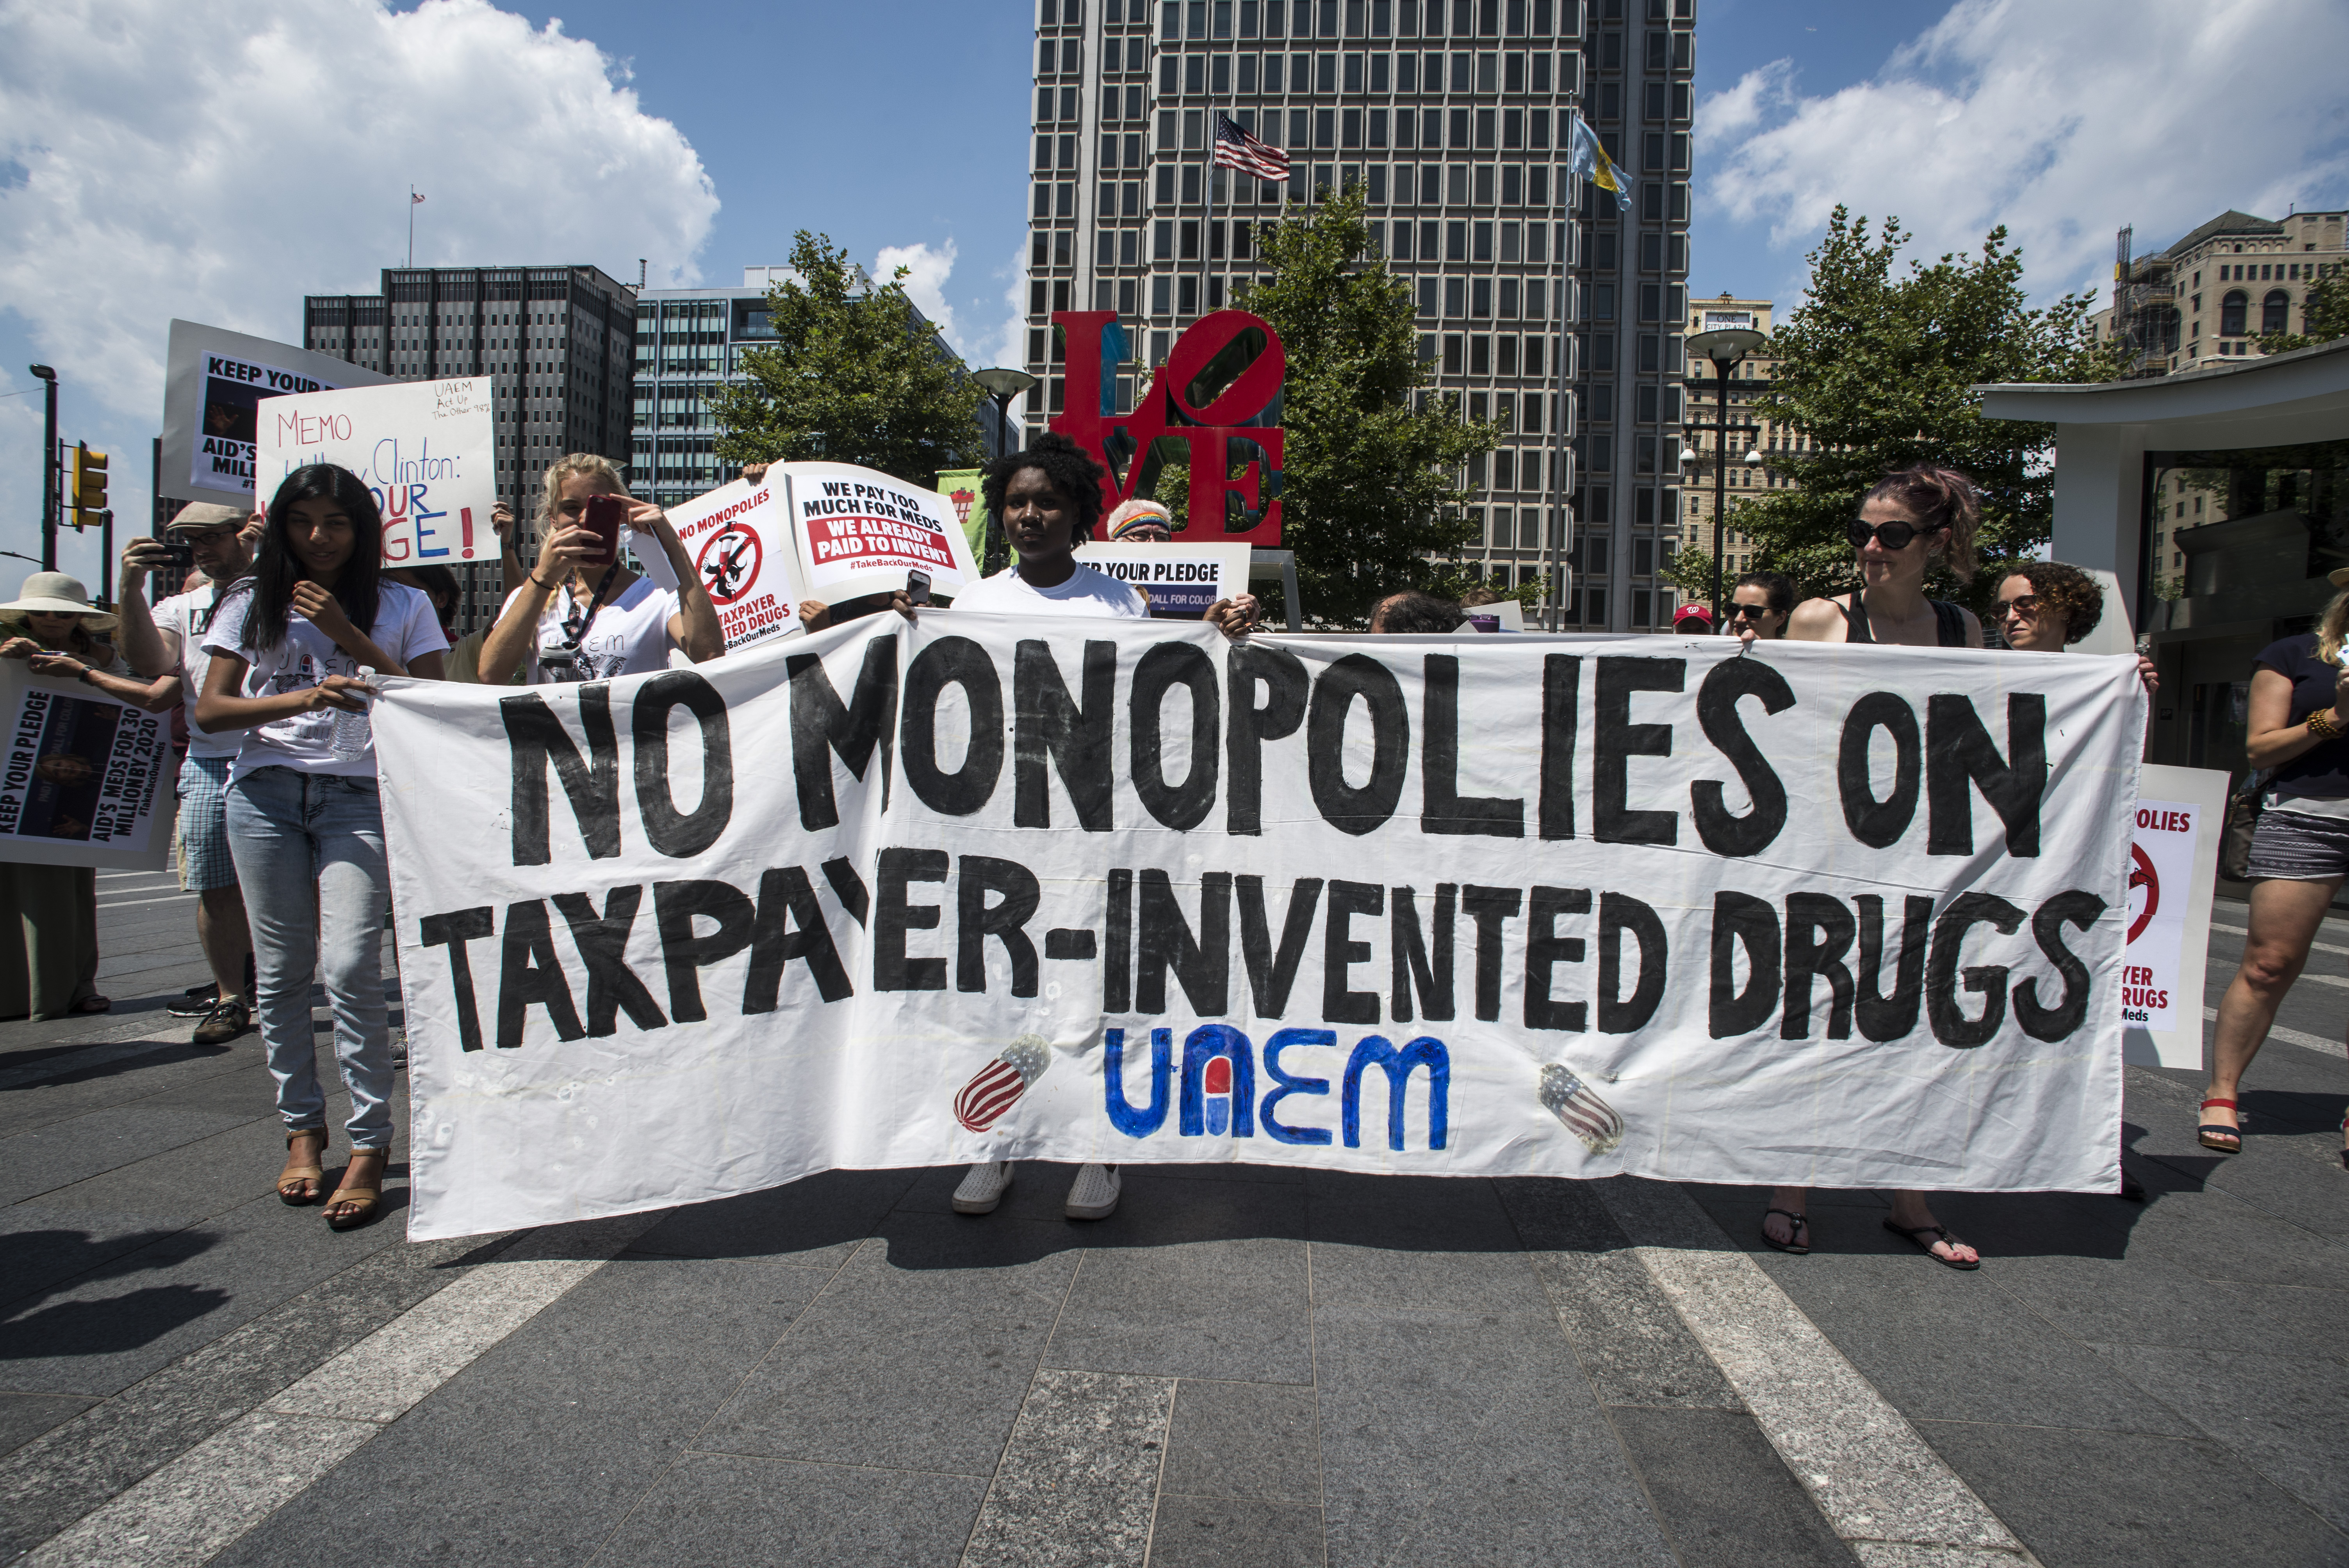 No monopolies on taxpayer-invented drugs